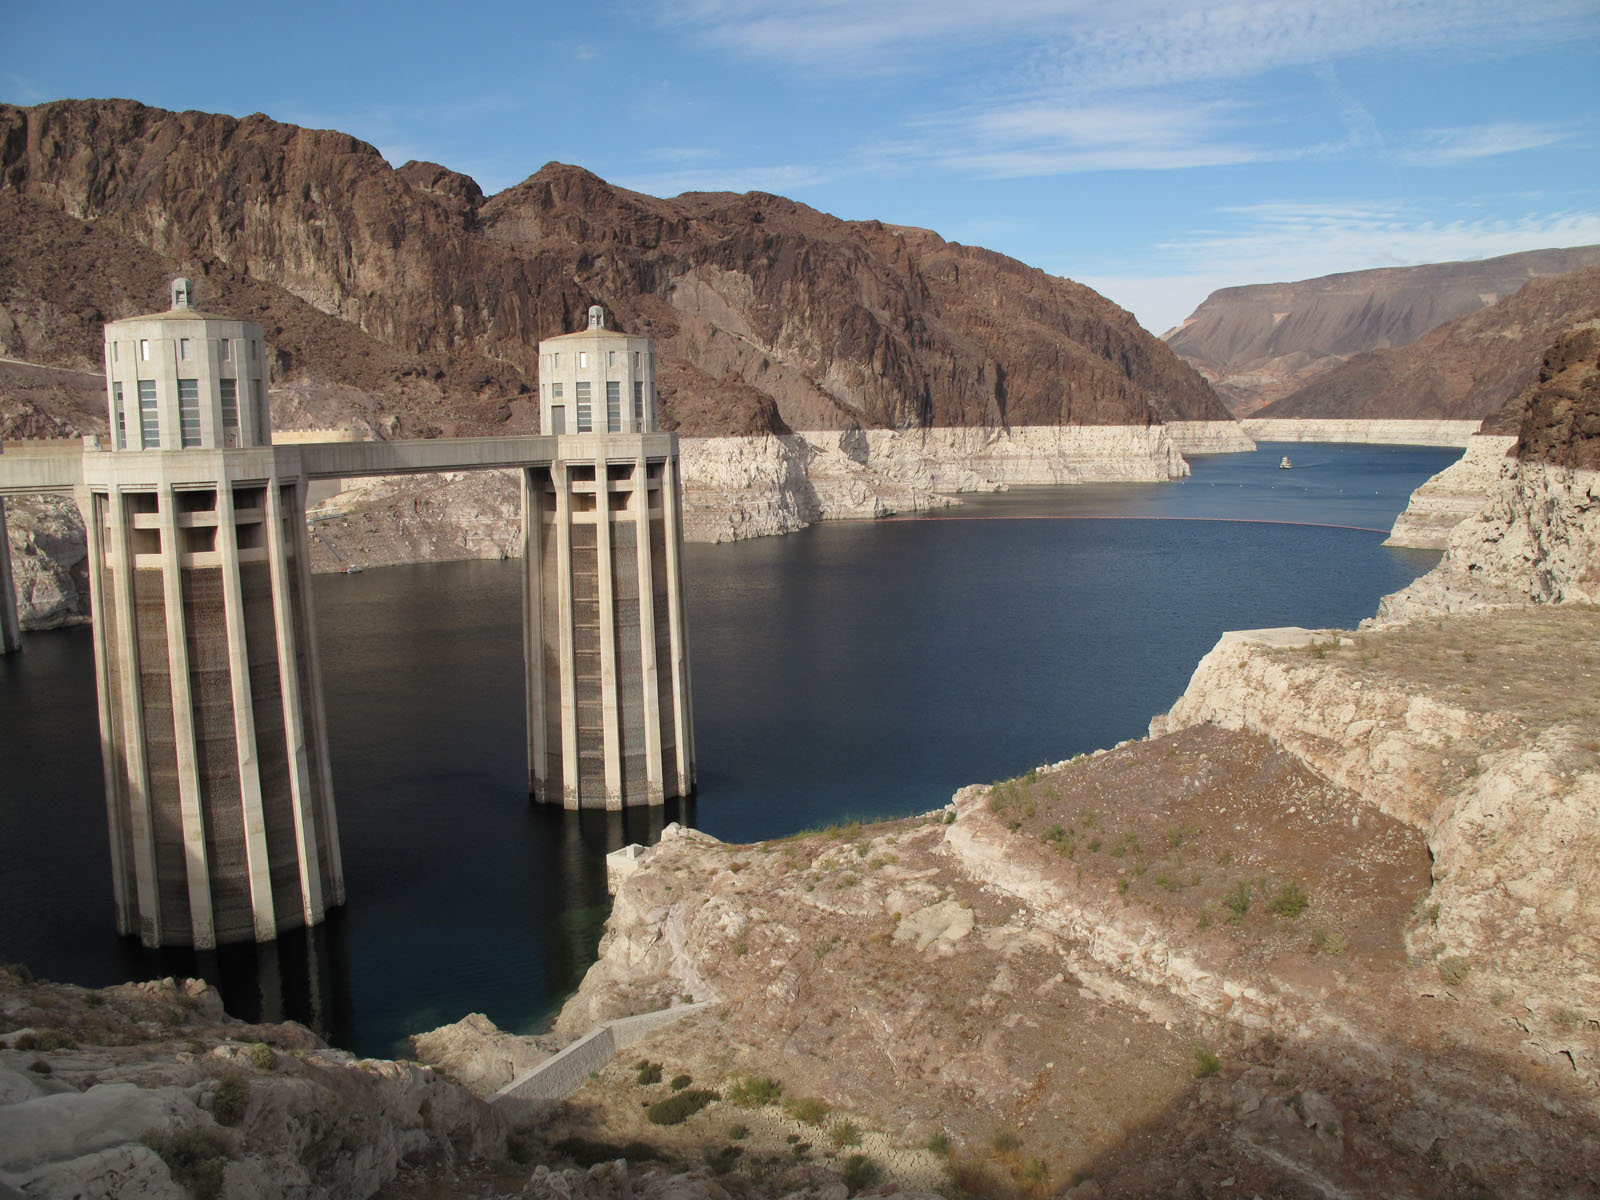 Depleted water levels of Hoover Dam